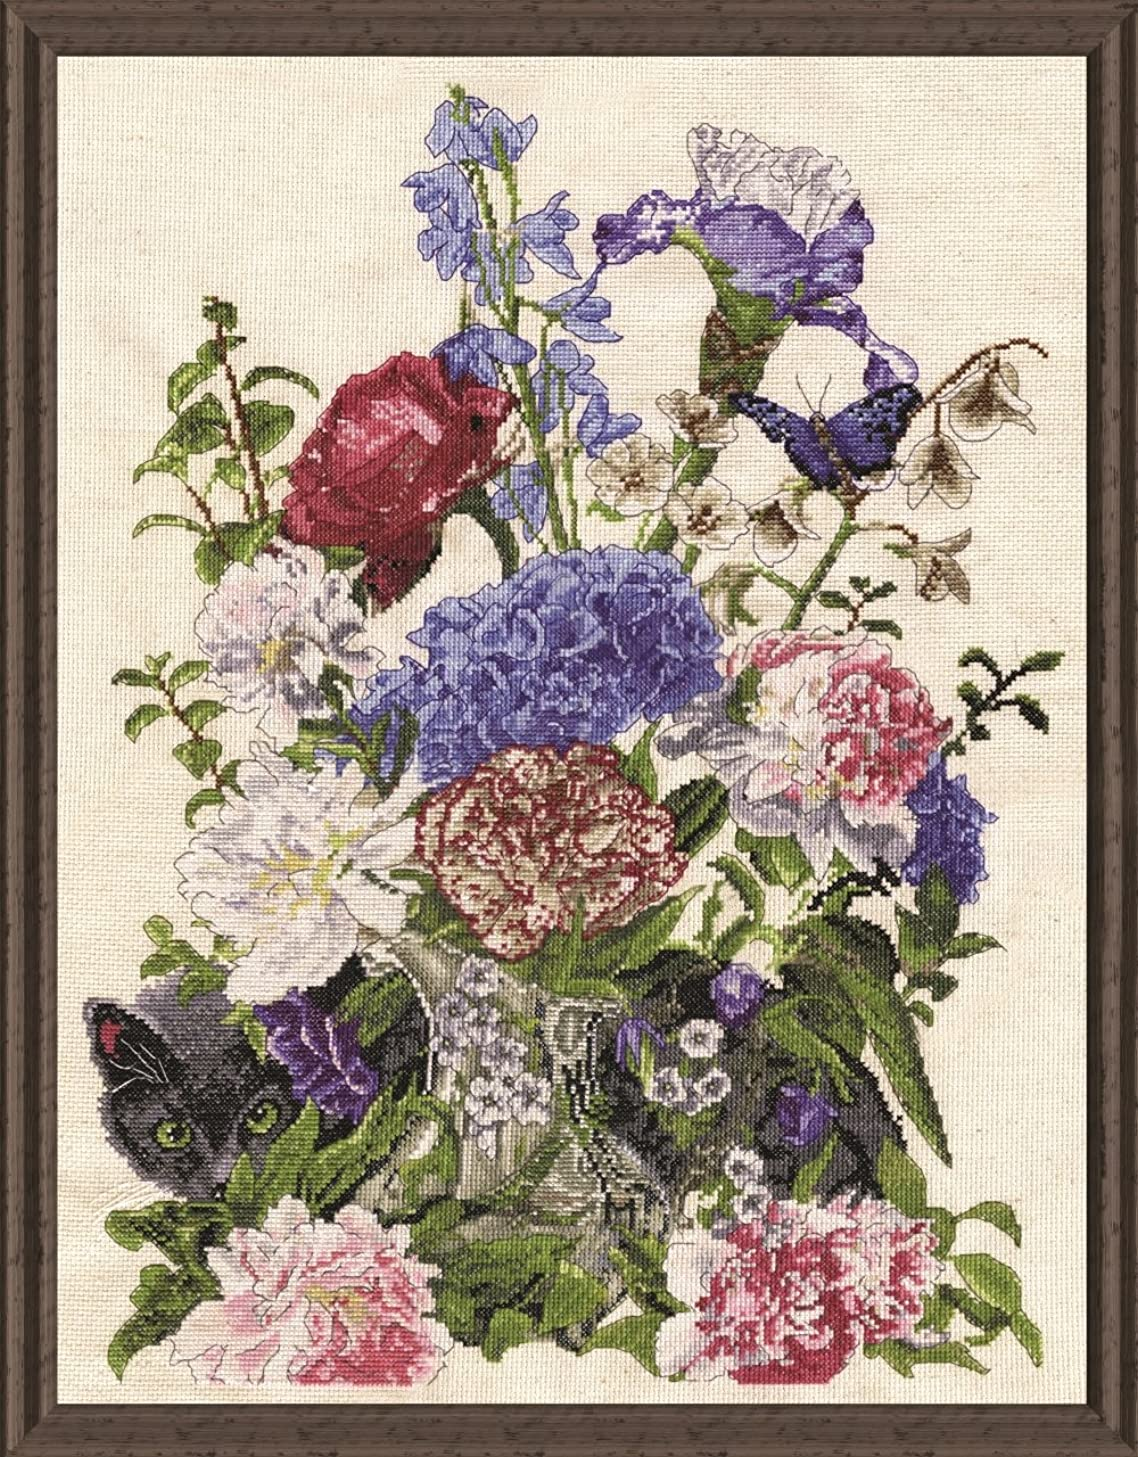 Tobin 2908 14 Count Bouquet with Cat Counted Cross Stitch Kit, 14